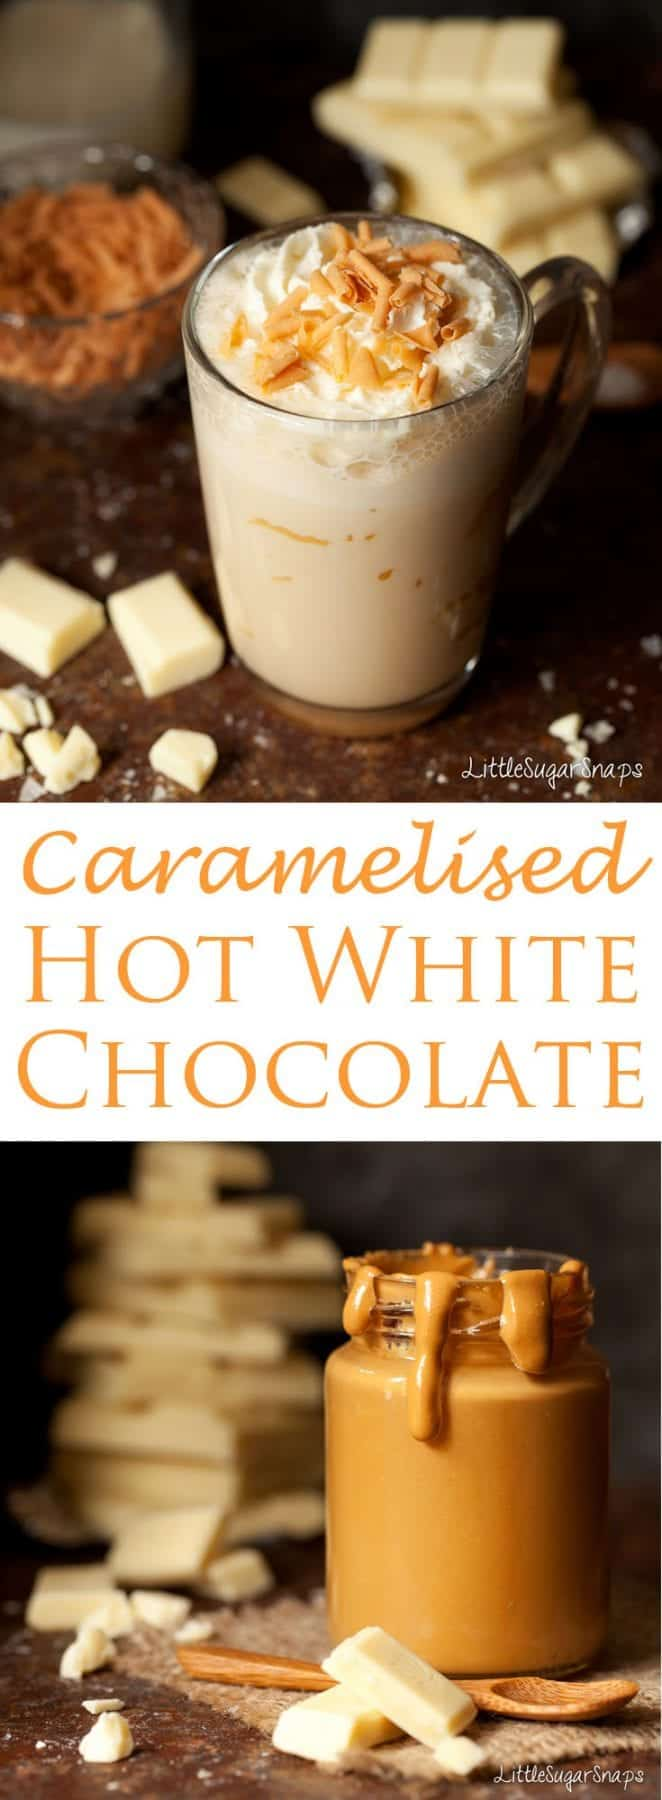 If you're craving a new addition to your hot chocolate repertoire, give hot chocolate made with Caramelised White Chocolate a whirl. It manages to combine, toasty, nutty butterscotch flavours with a mellow sweetness that is sure to please. Pure magic.